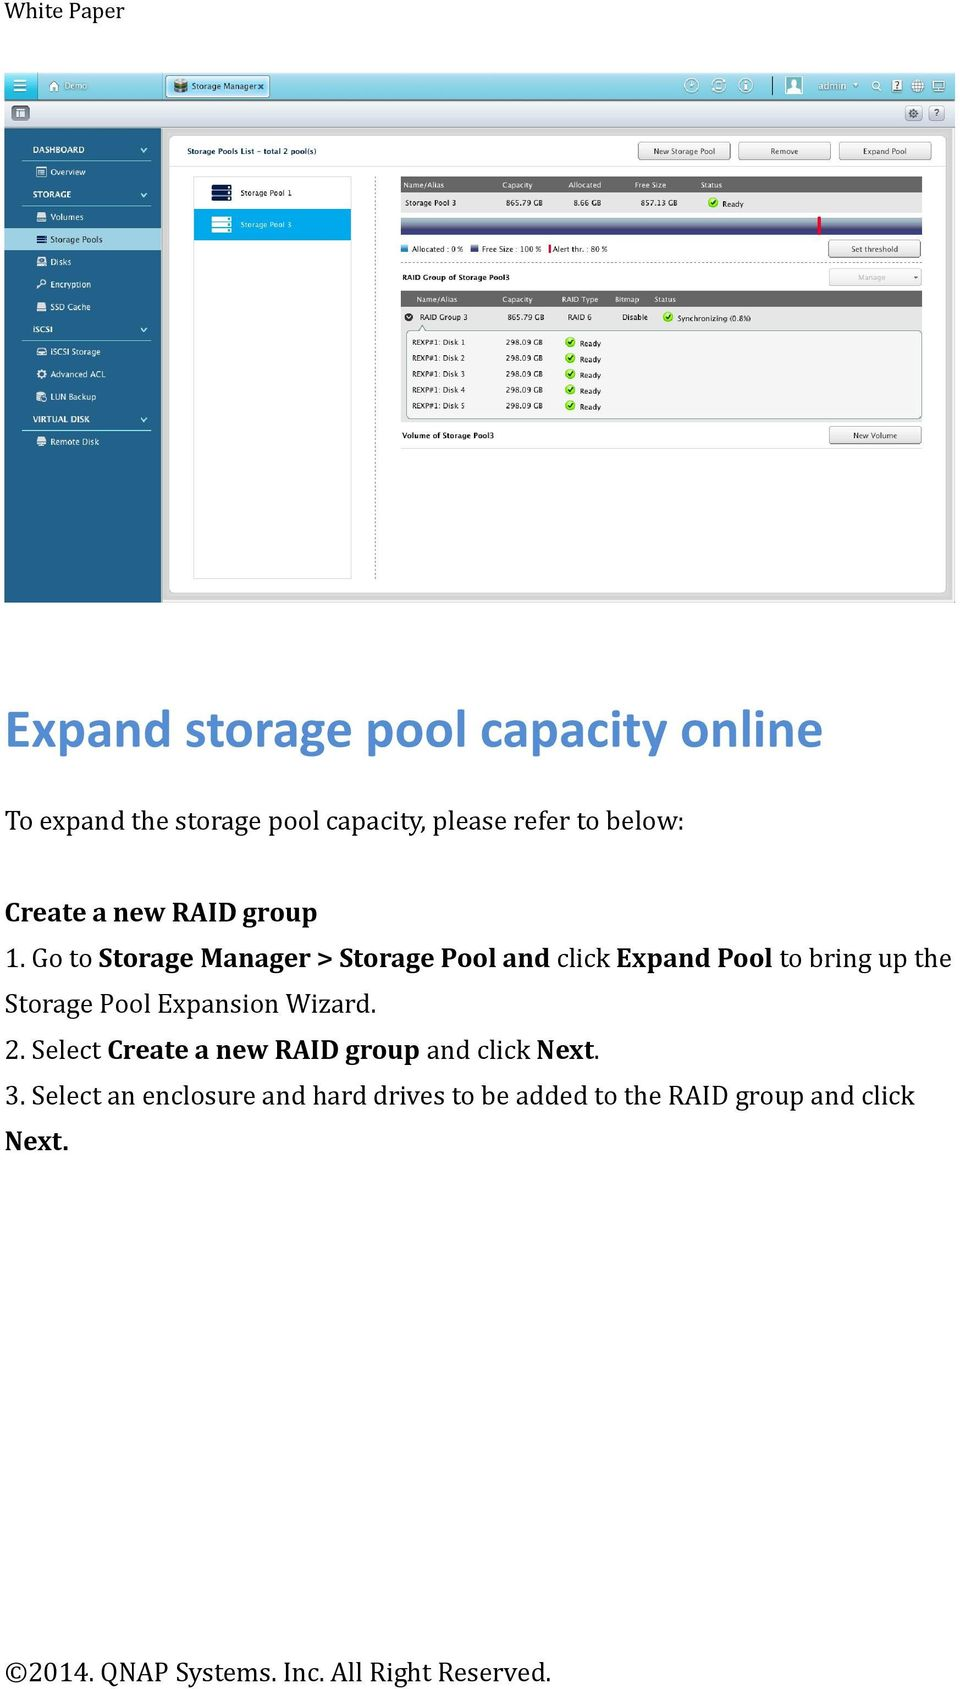 Go to Storage Manager > Storage Pool and click Expand Pool to bring up the Storage Pool